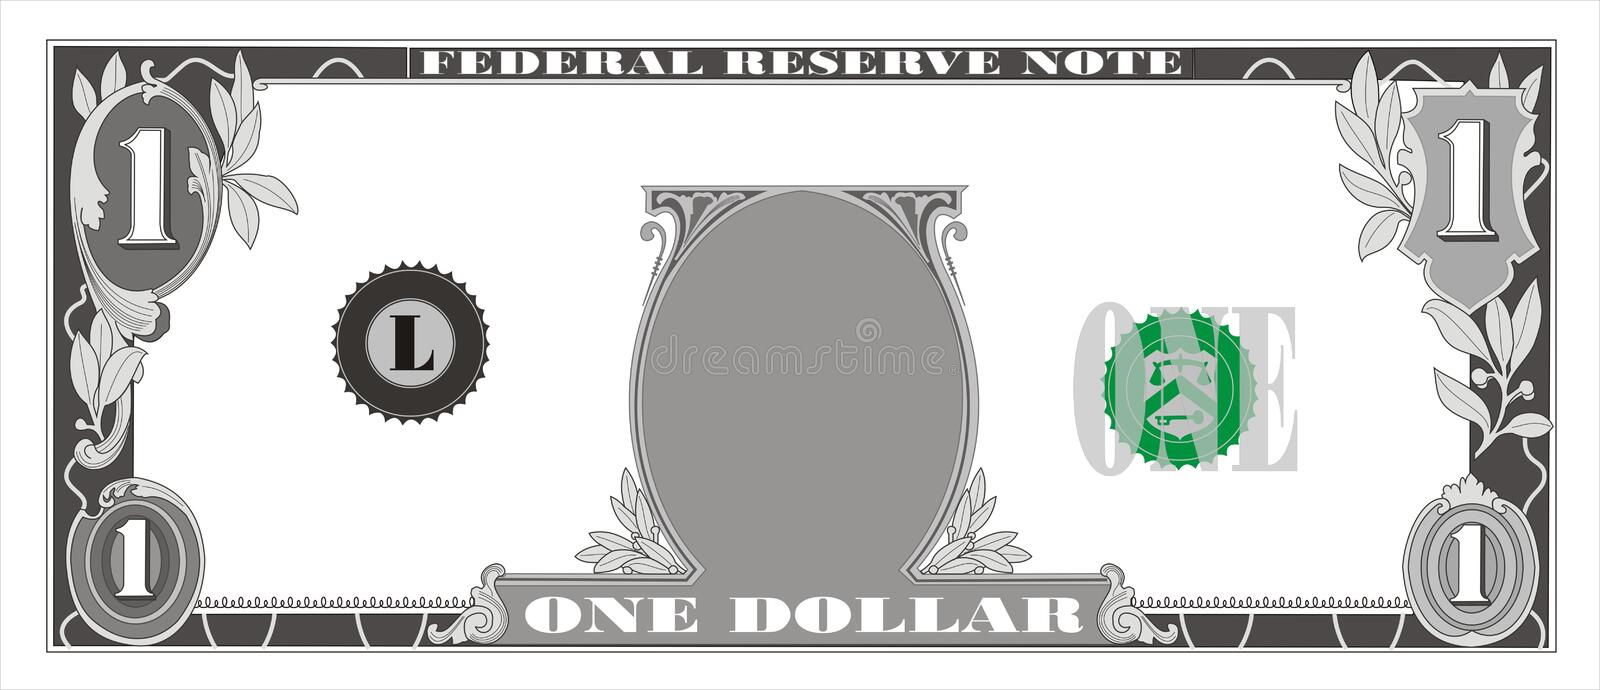 Billete de dólar libre illustration